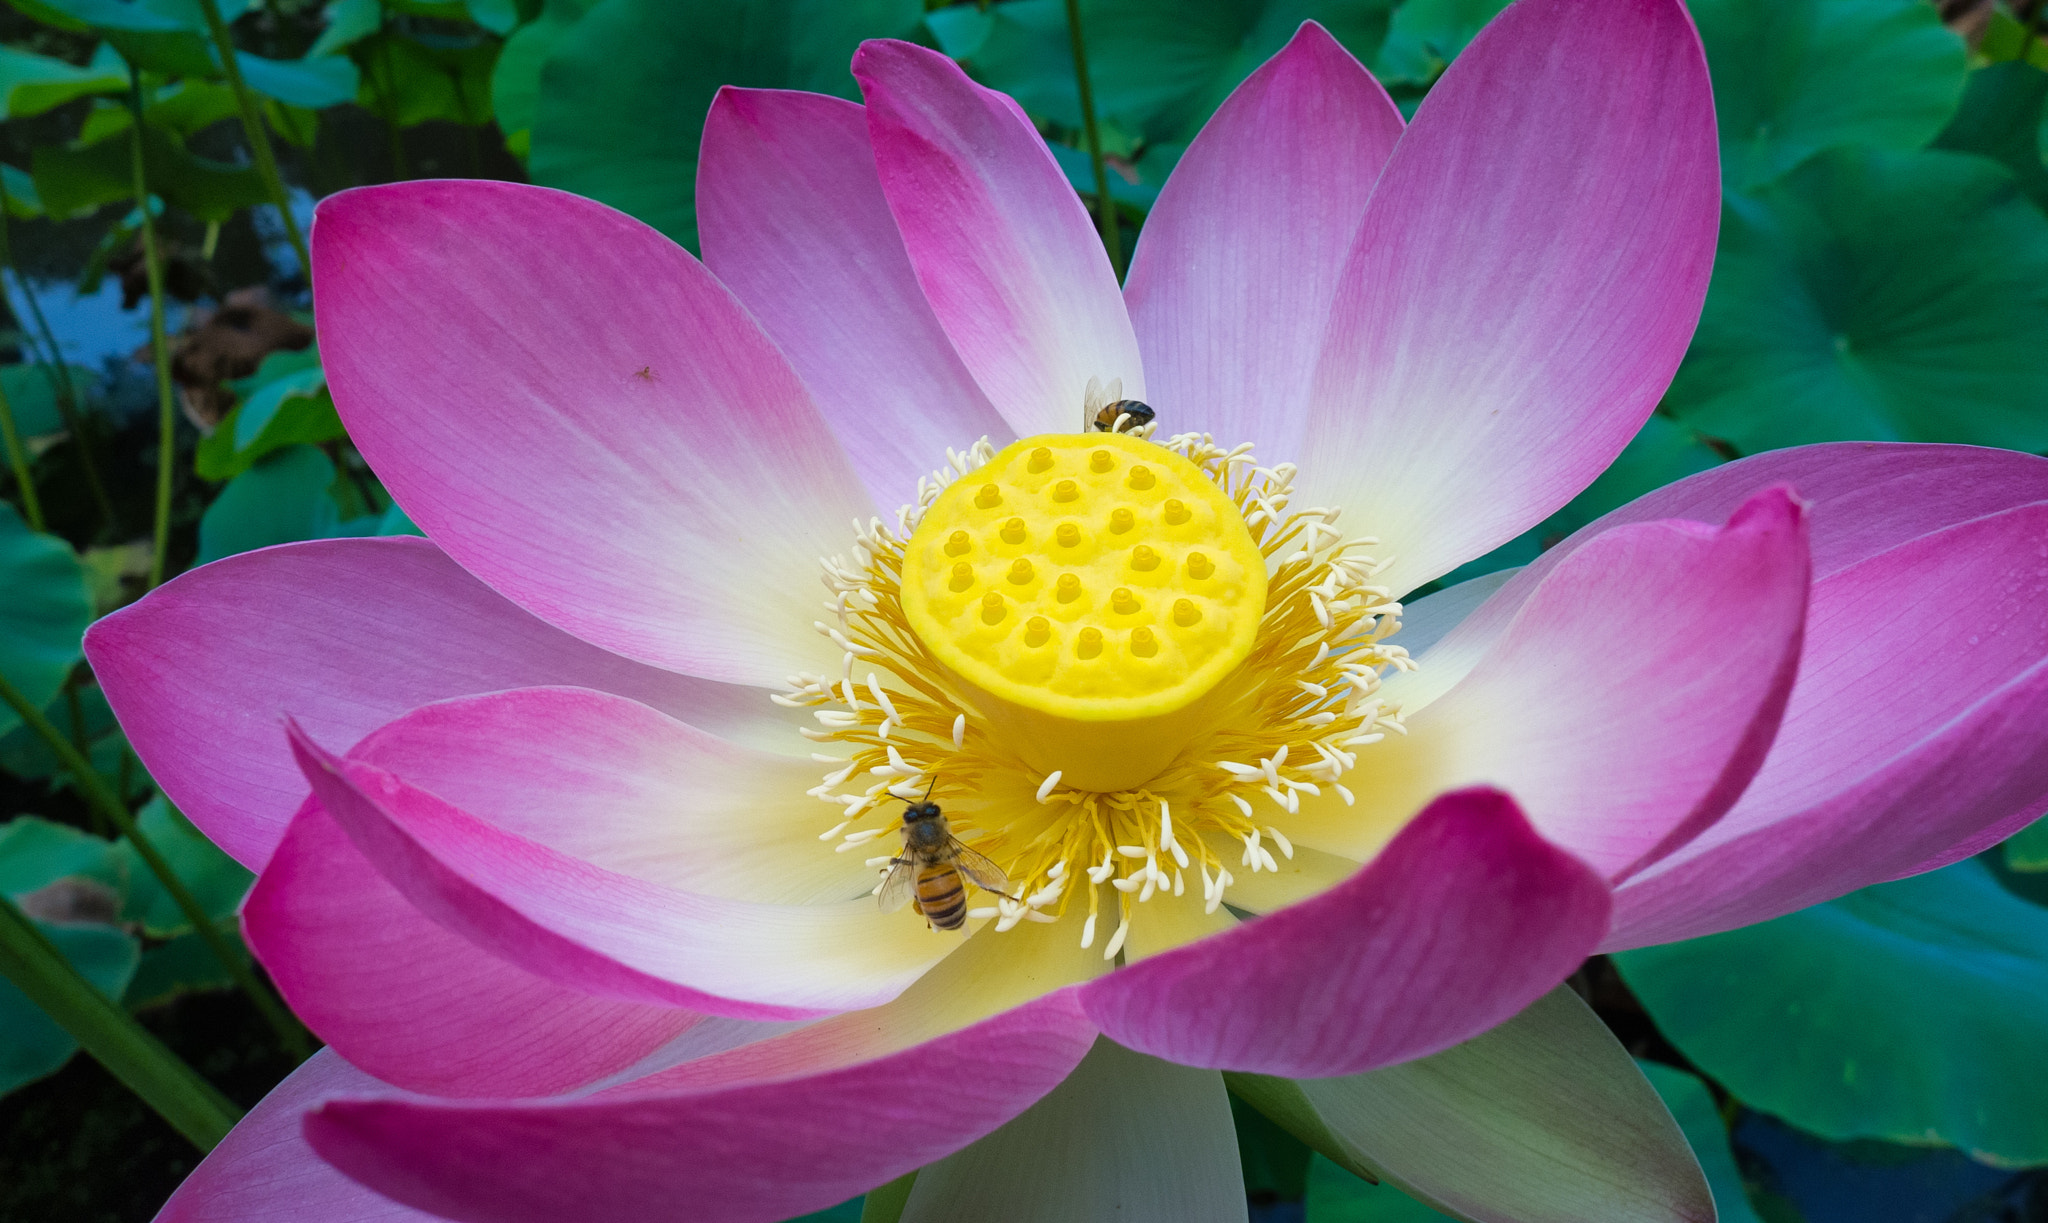 Photograph Lotus by Keith Skelton on 500px